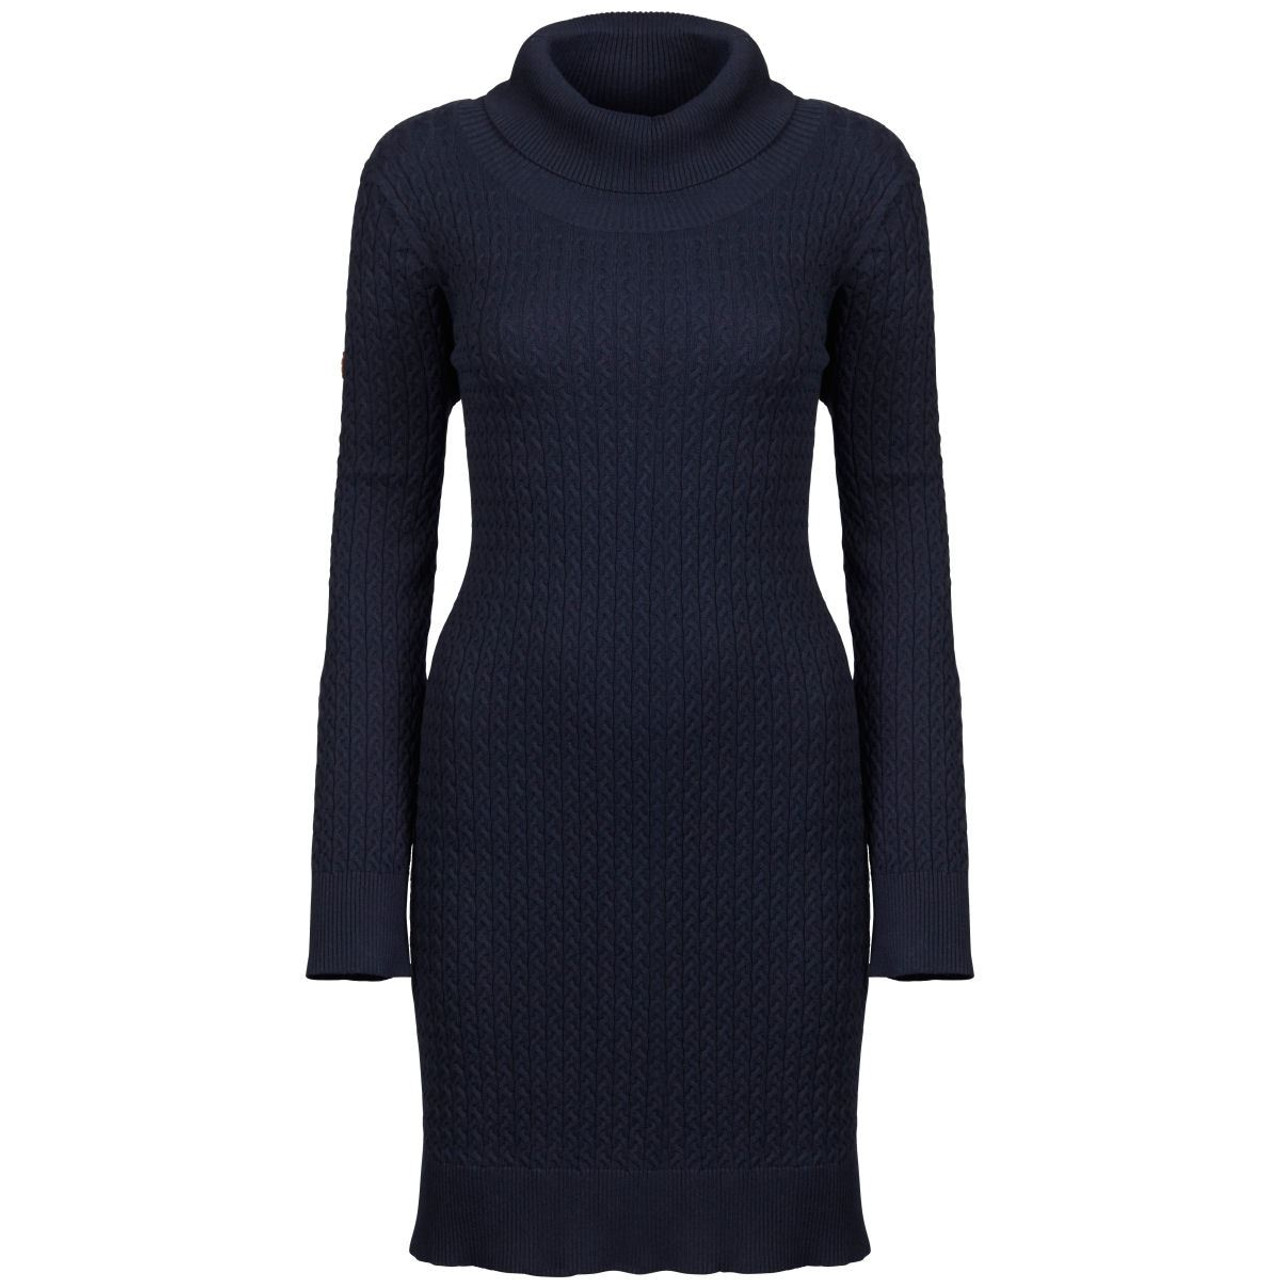 Dubarry Renvyle Dress in Navy